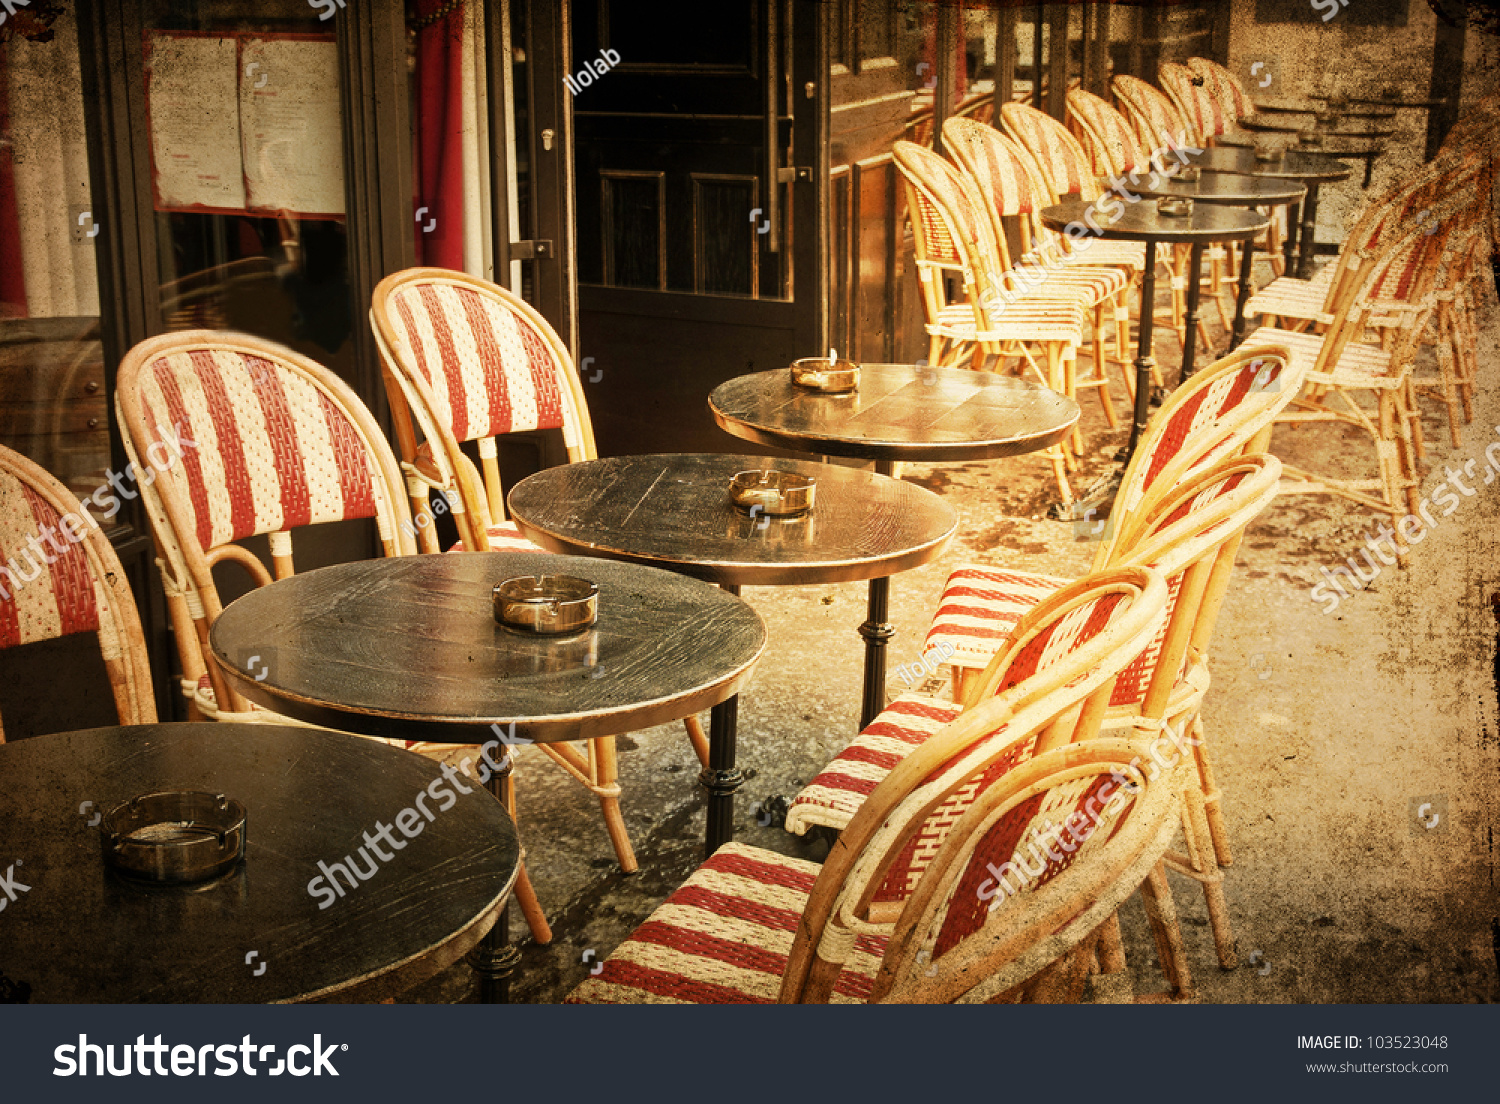 Old Fashioned Coffee Terrace With Tables And Chairs Paris France Stock Photo 103523048